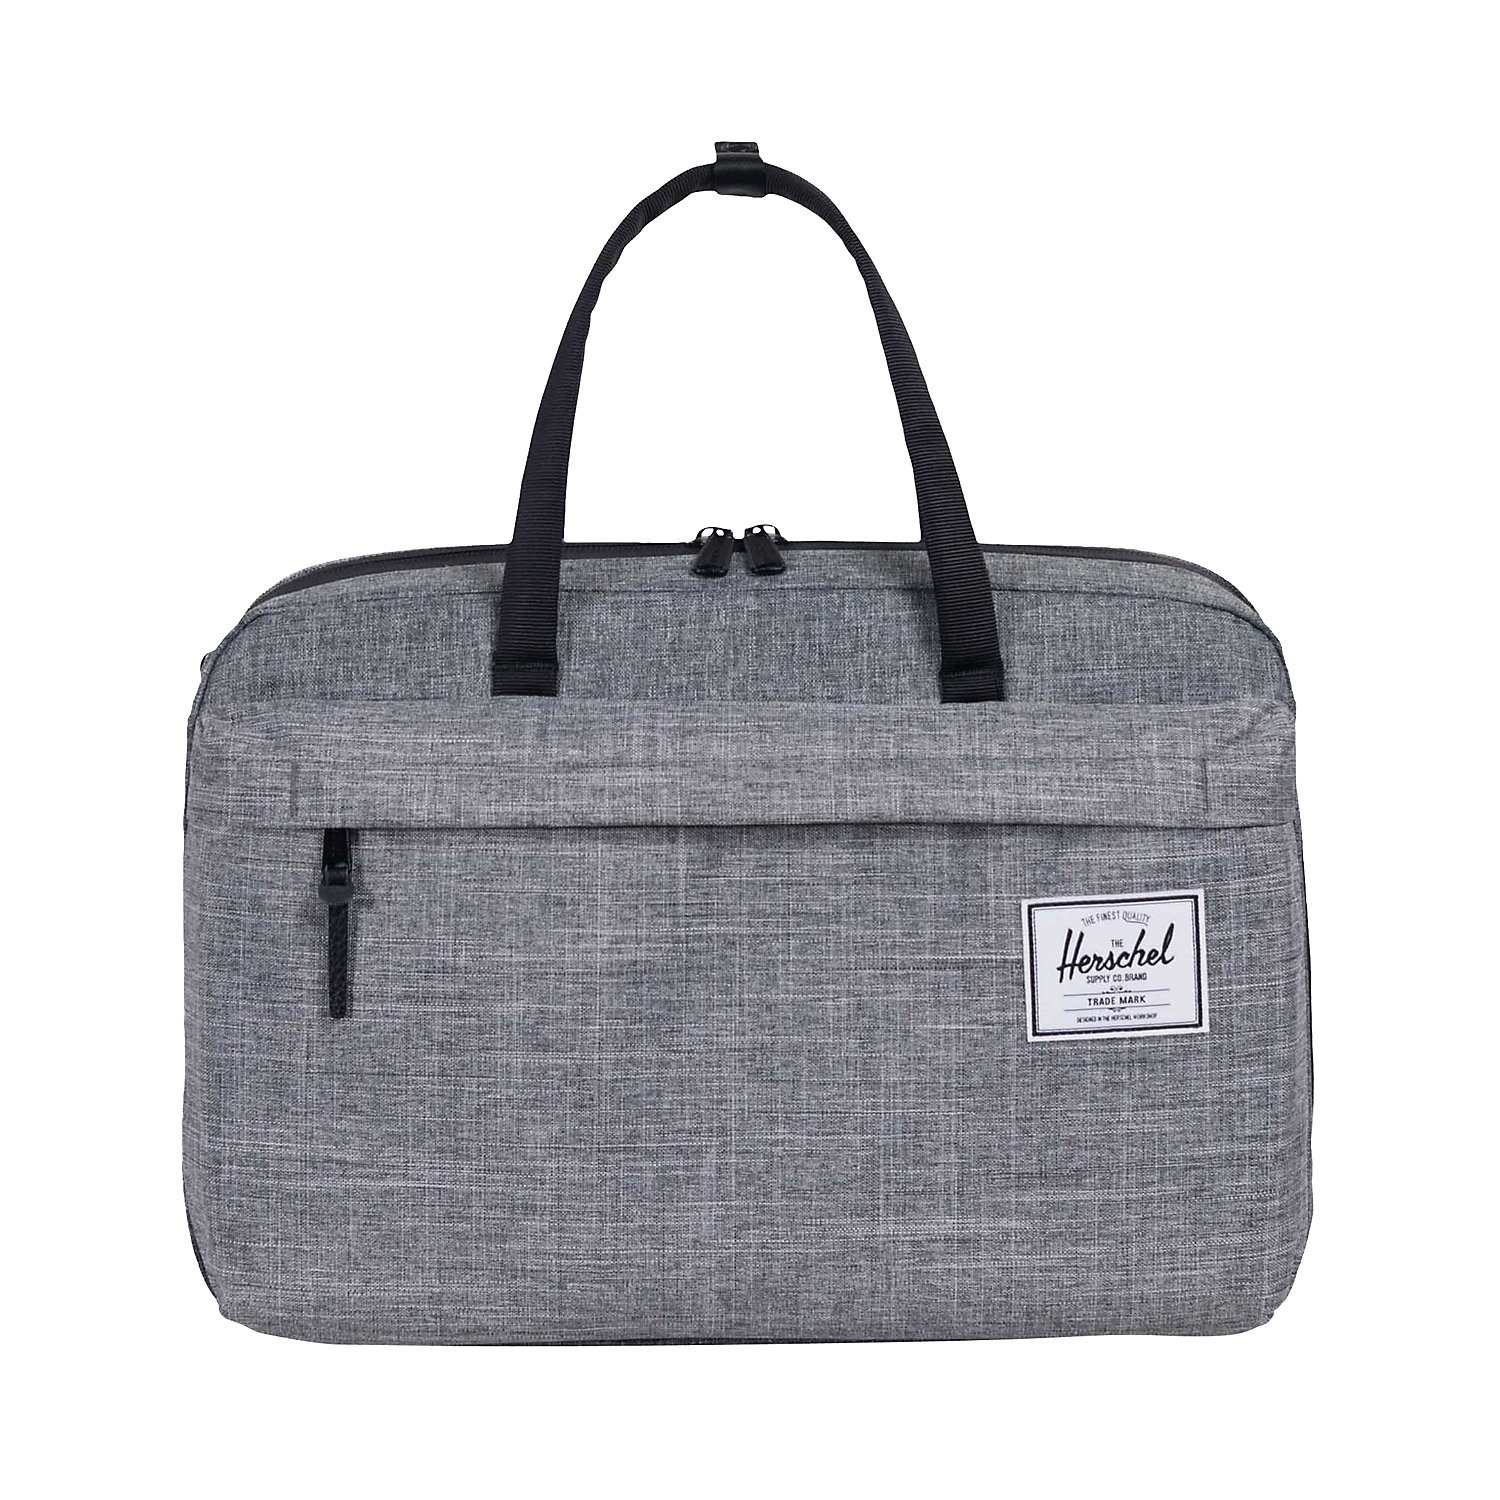 Herschel Travel Bag Bowen Herschel Travel polyester 36.0 I o4kIQd